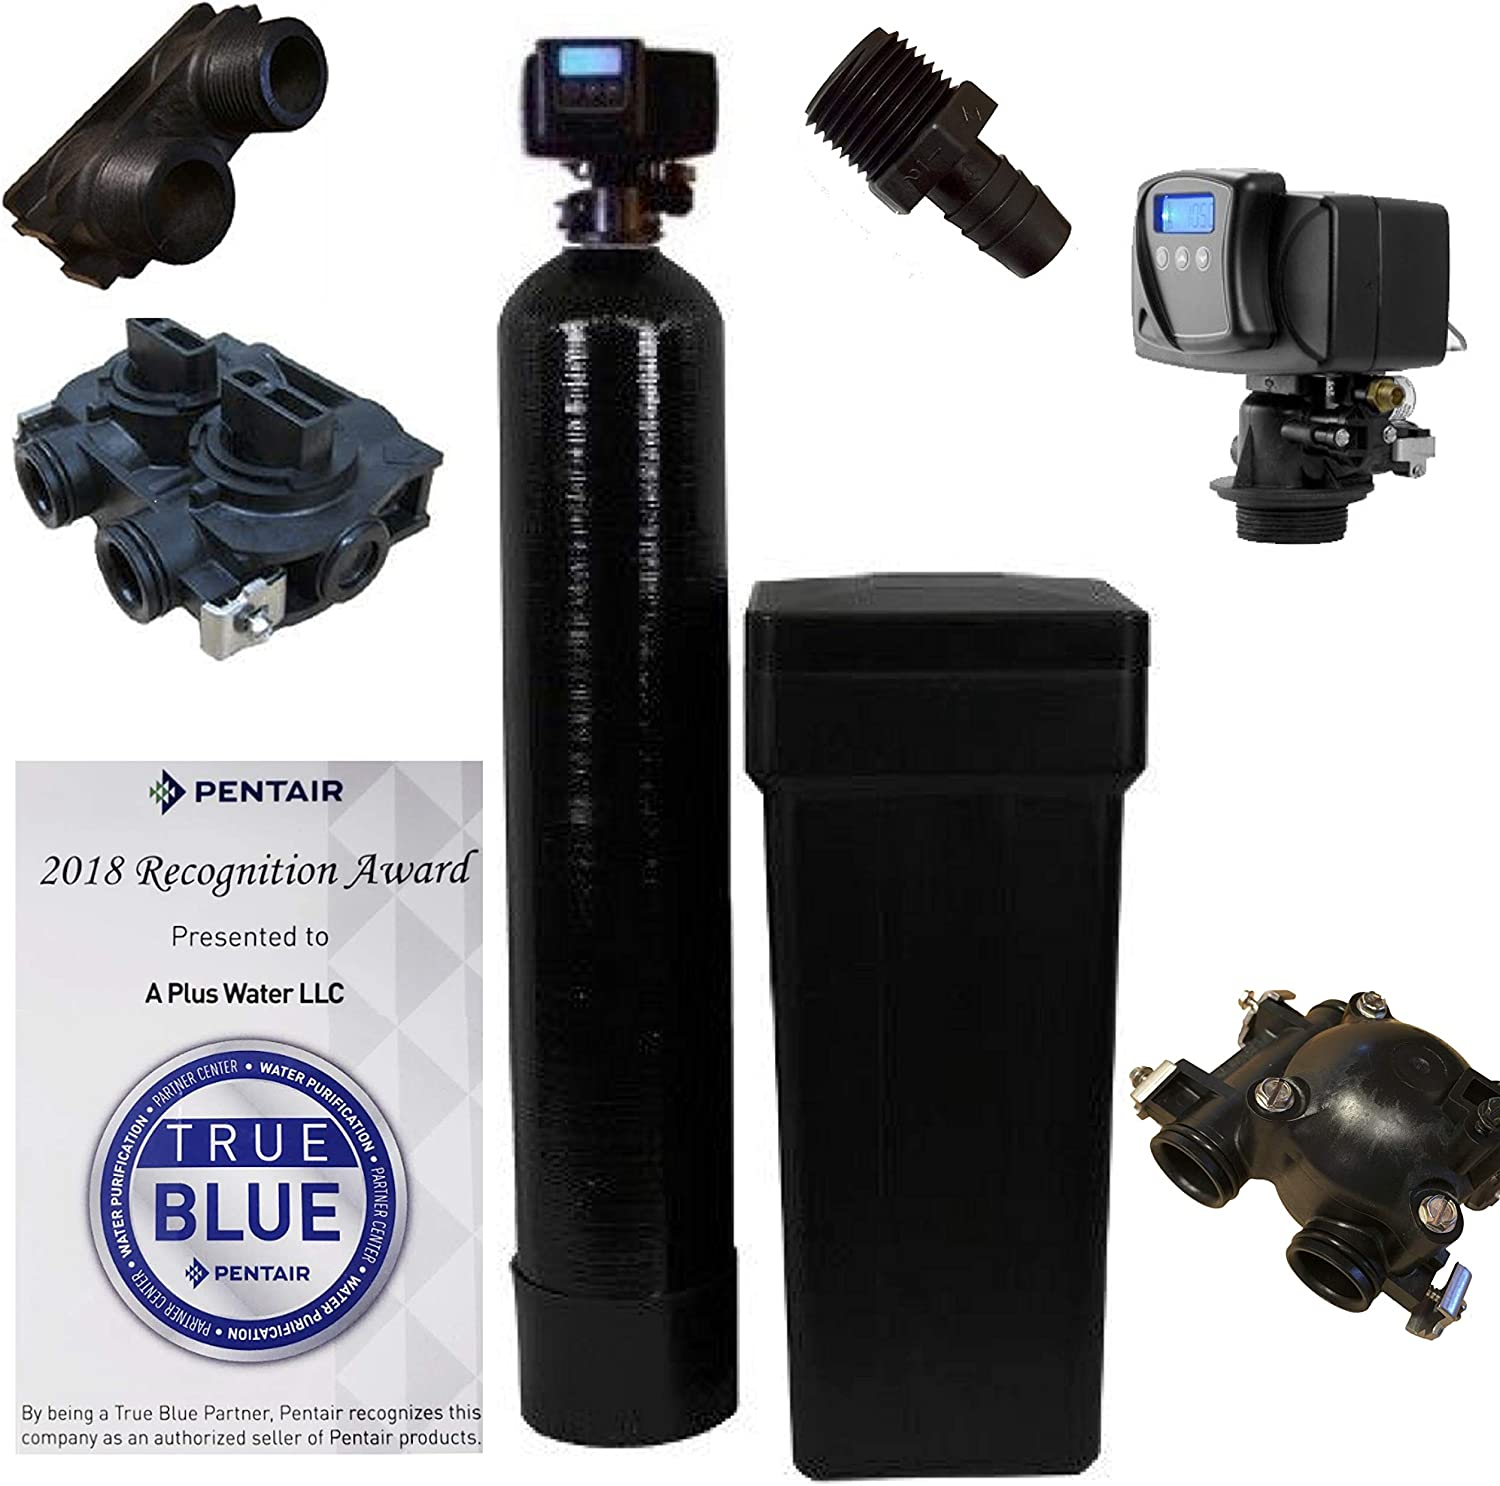 Fleck 5600 SXT 64,000 Grains Water Softener